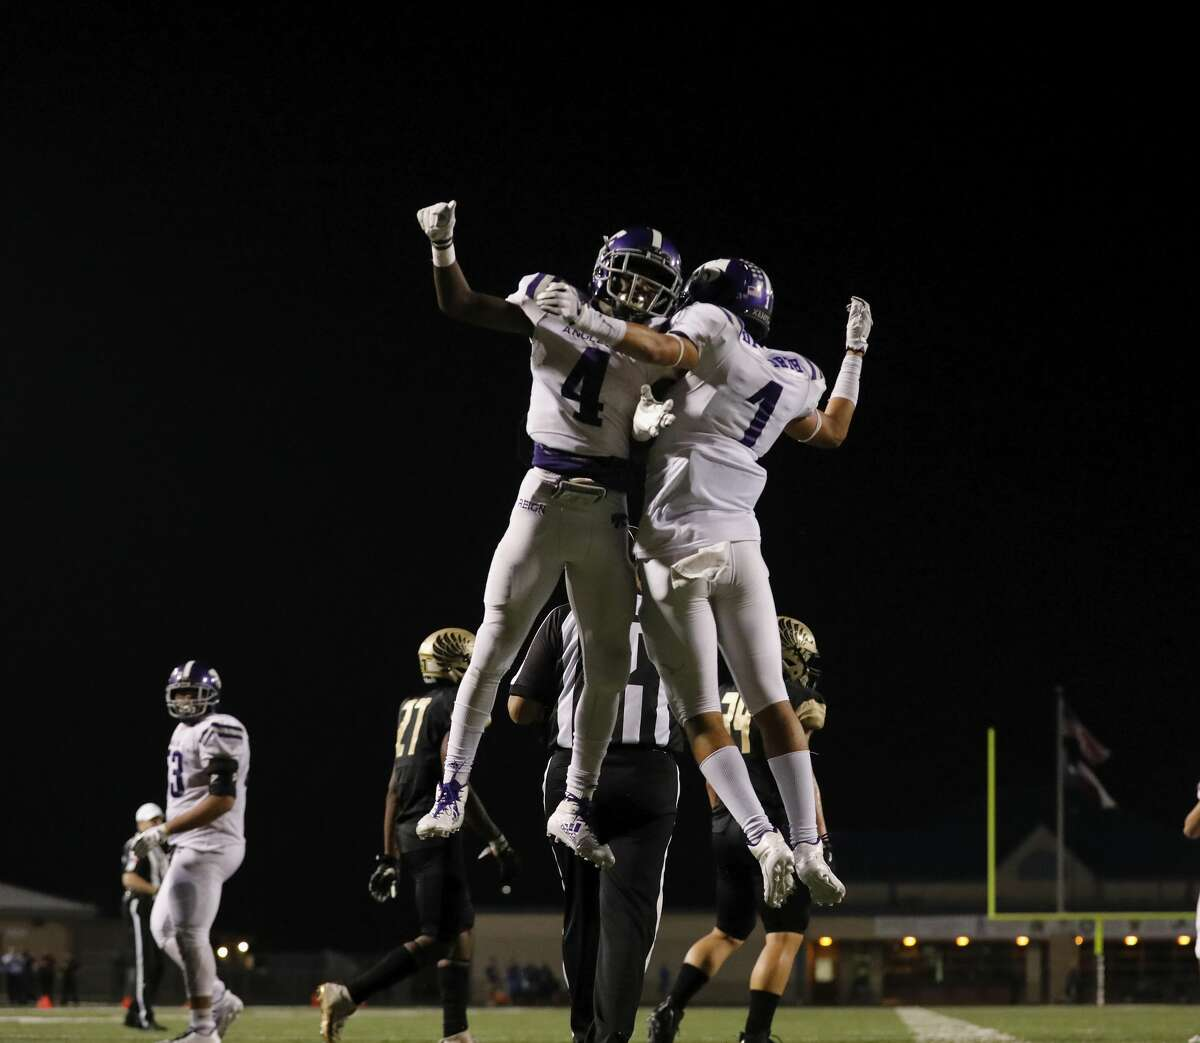 Angleton Wildcats My'kell Ross (4) celebrates with Cameron Dilworth (1) after a touchdown in the third quarter during the high school football game between Angleton Wildcats and the Foster Falcons in Rosenberg, TX on Friday, November 03, 2017.